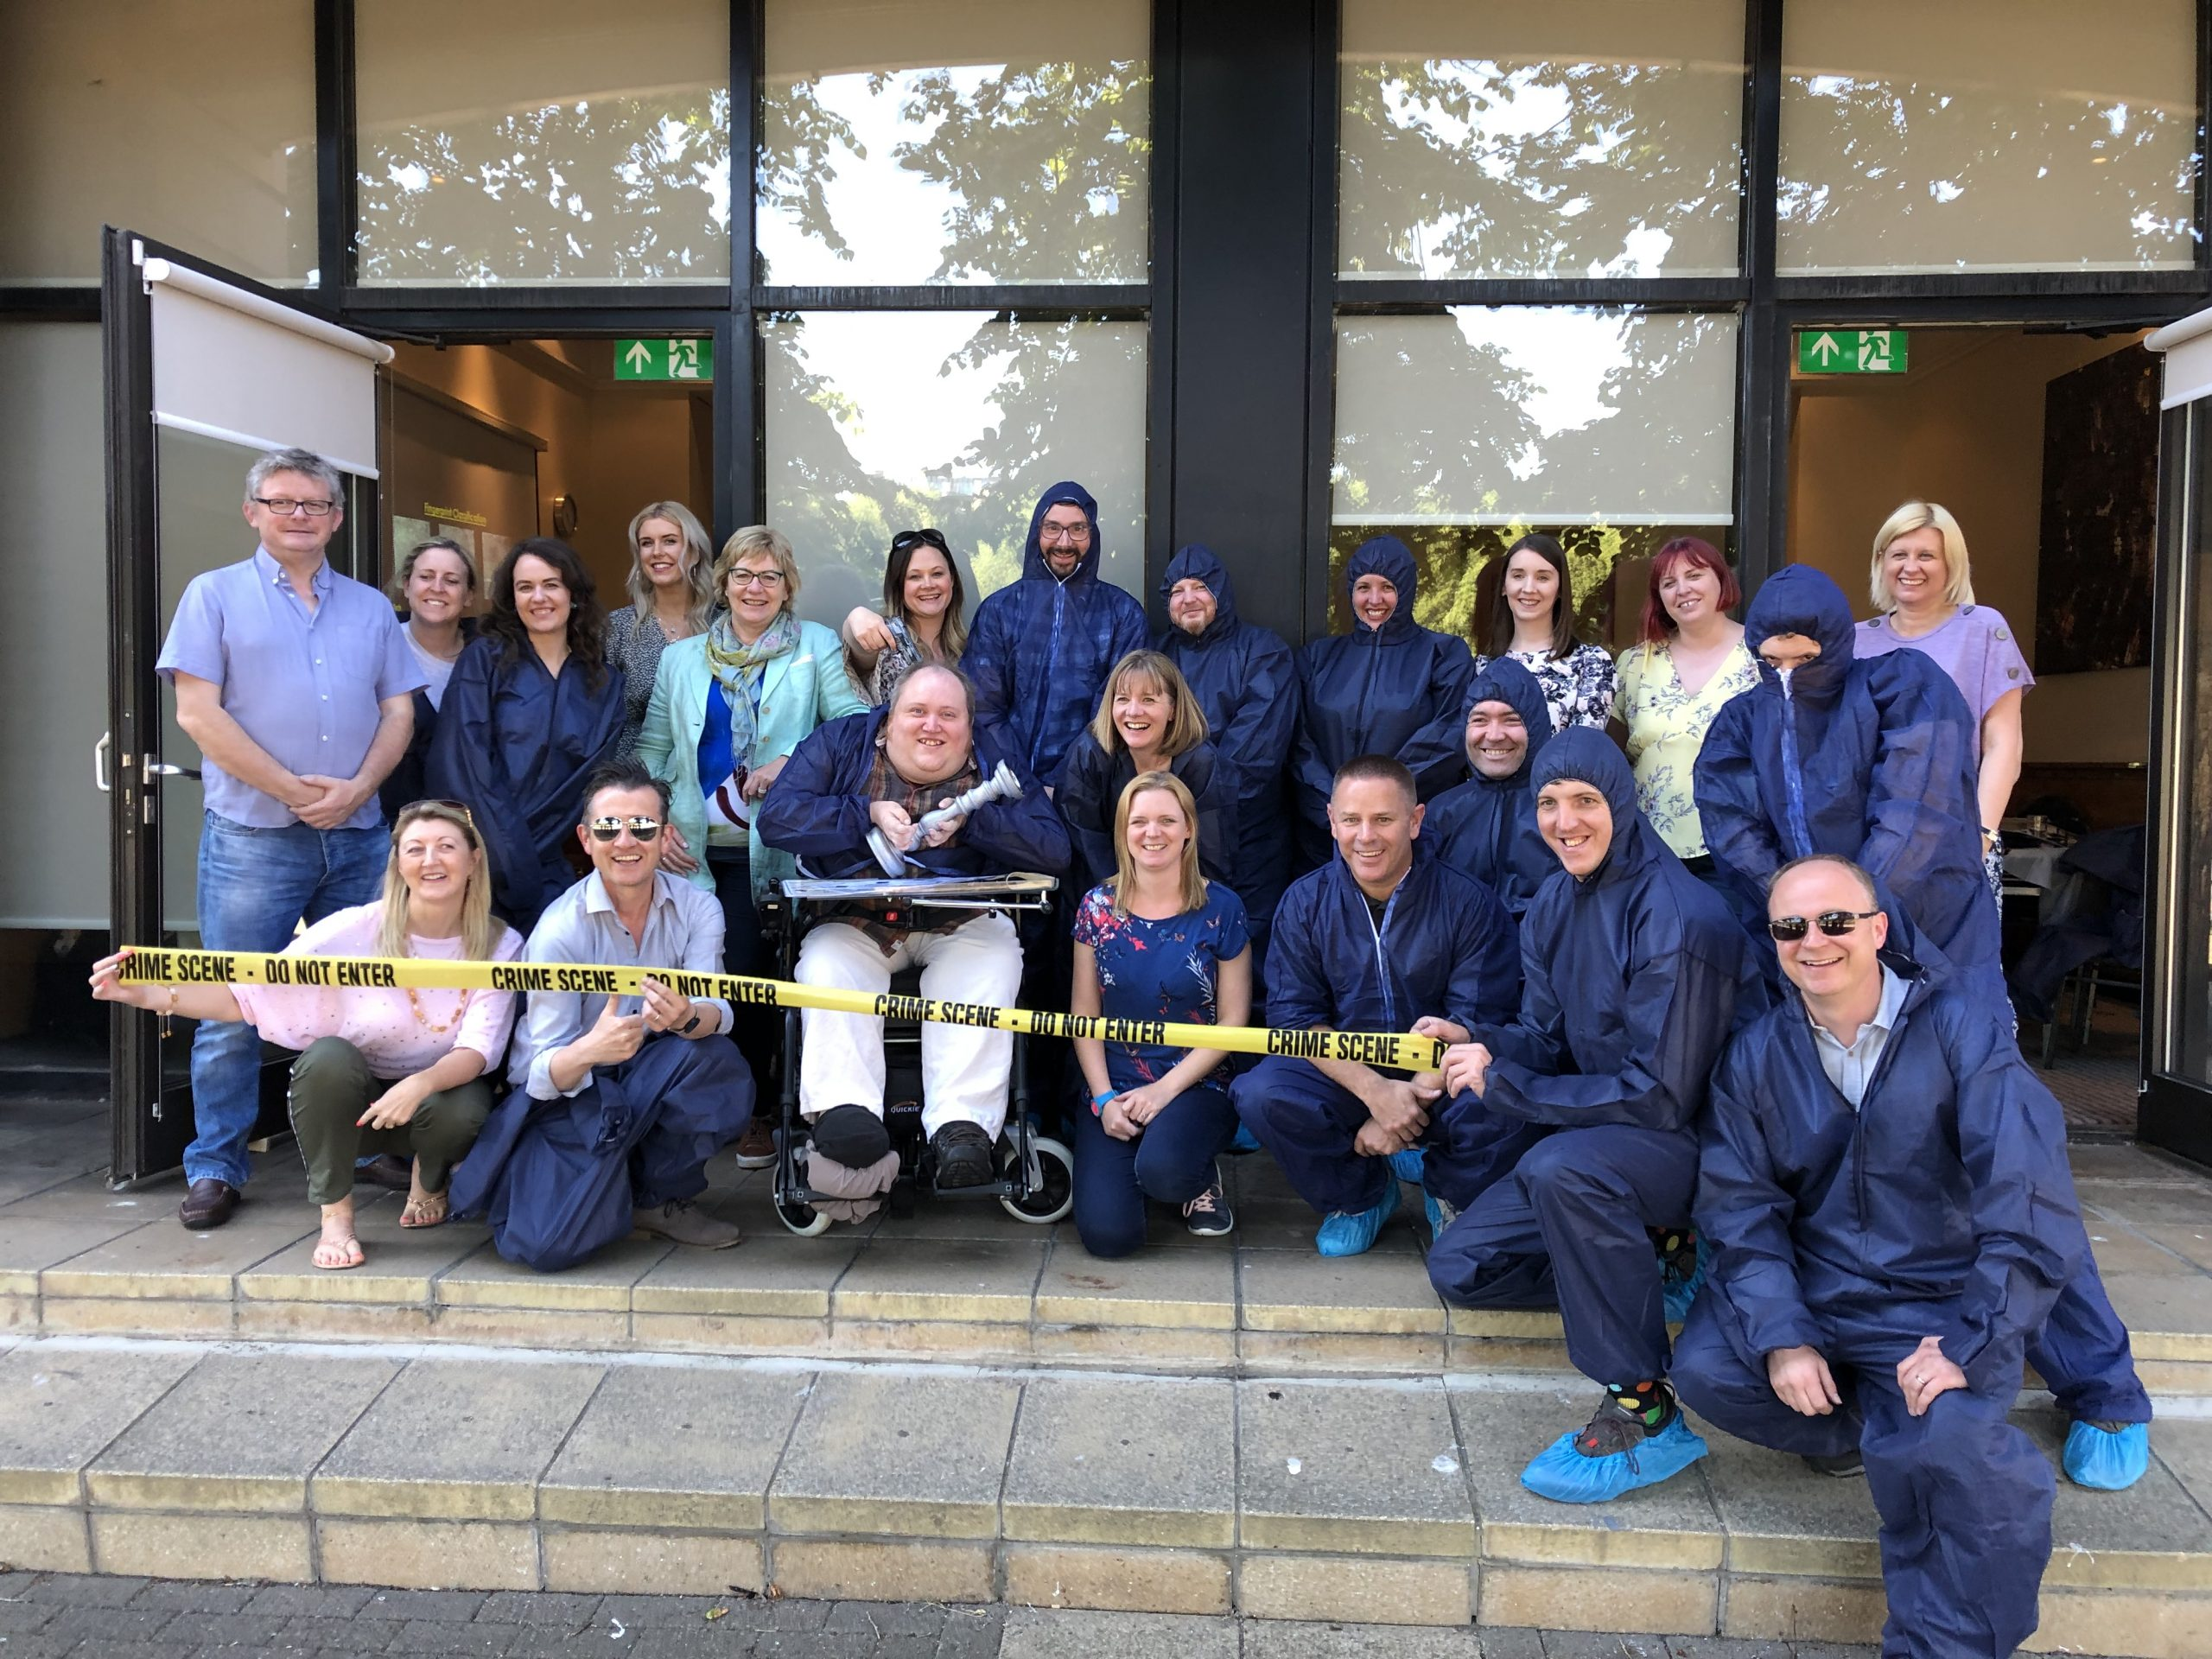 CSI Training and Events - ITV Signpost Team photo at a CSI Team building event